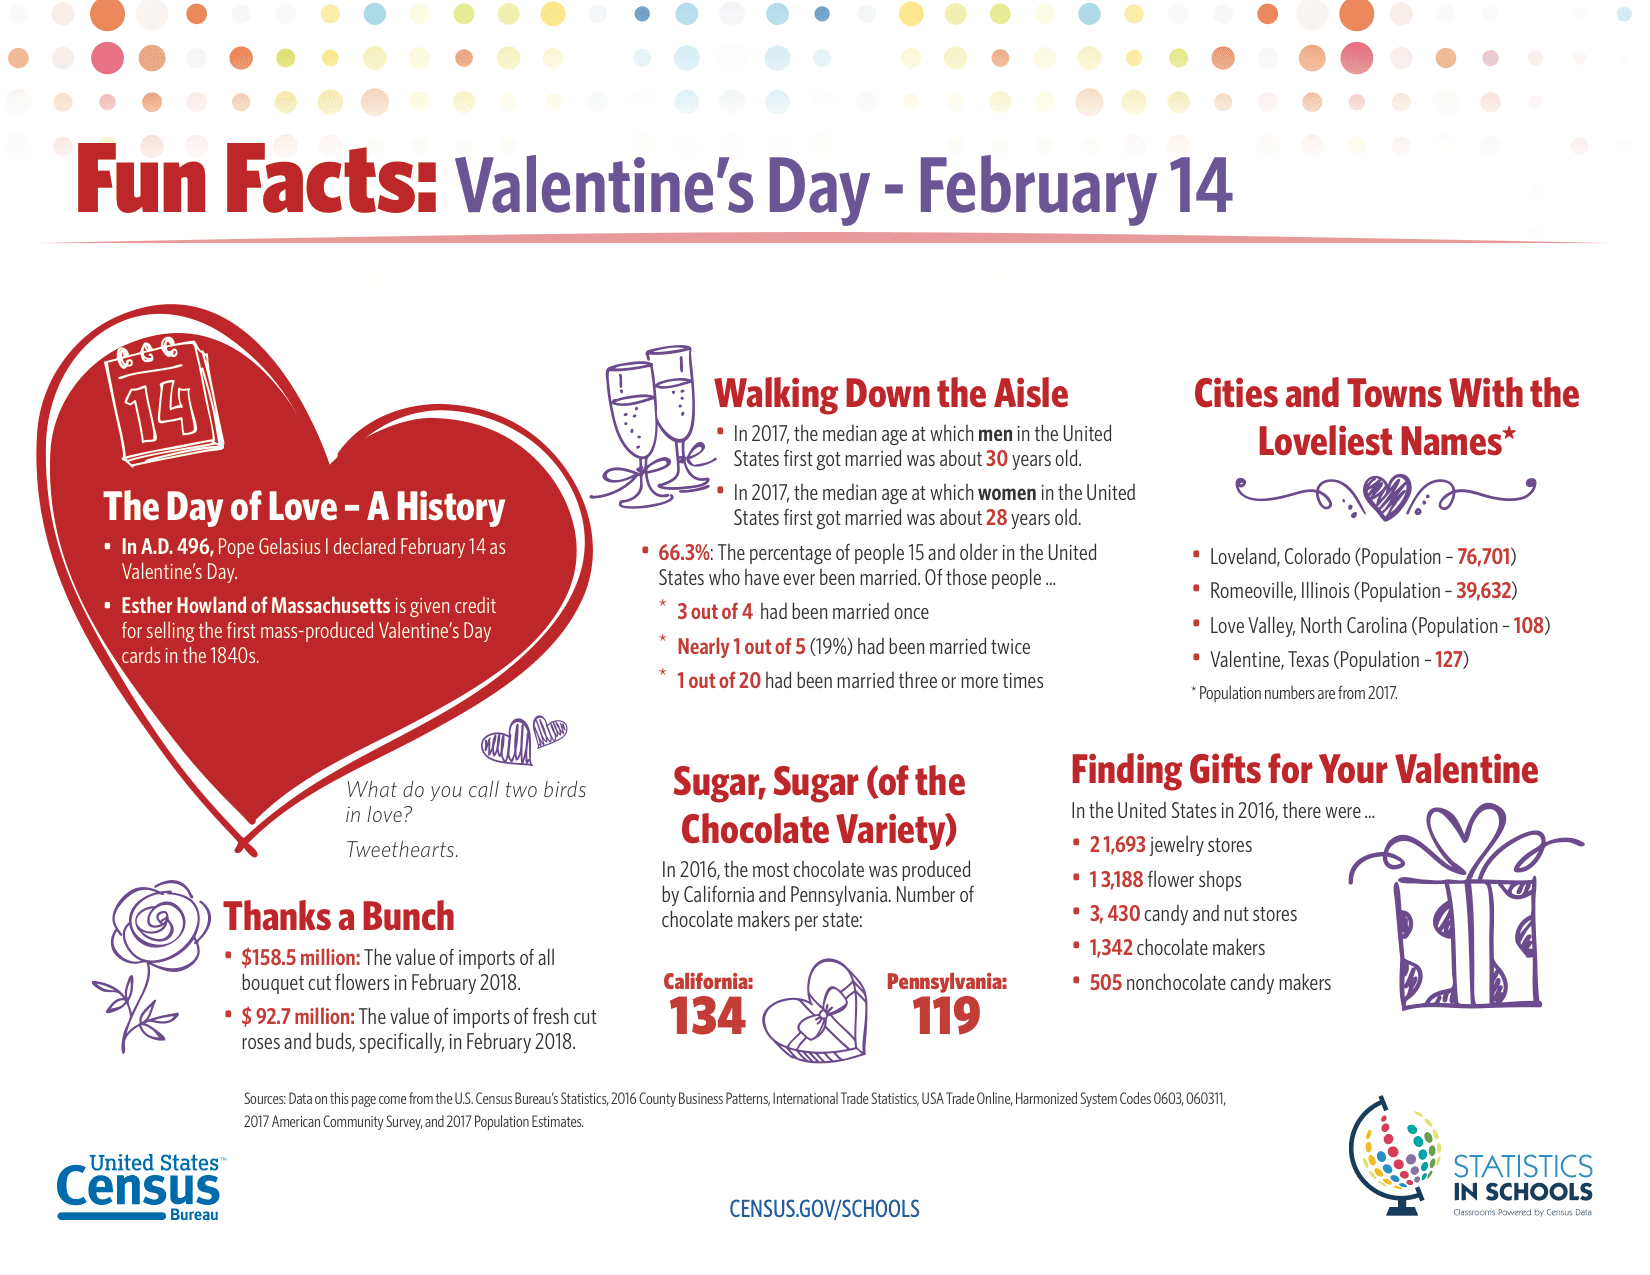 Census Valentine's Day Facts